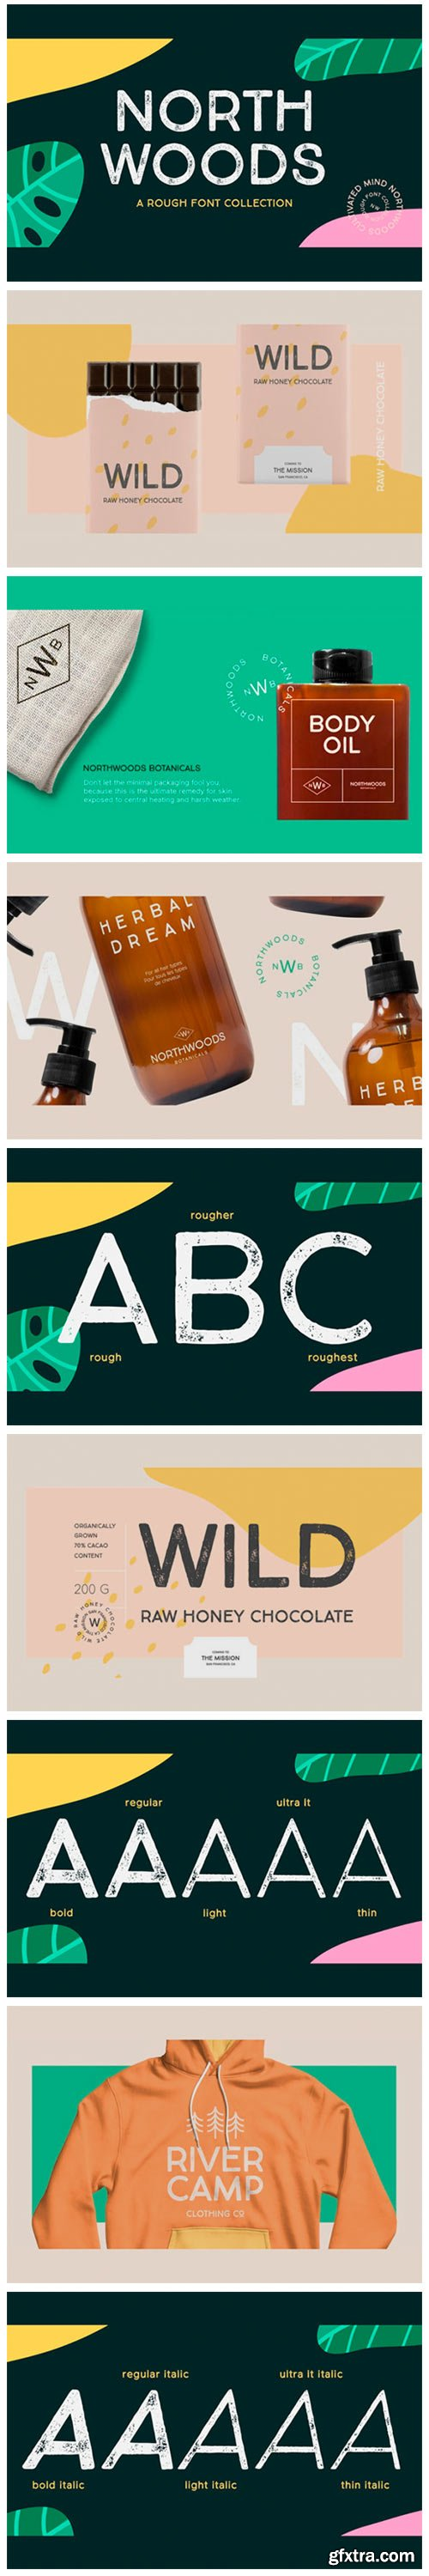 Northwoods Font Family